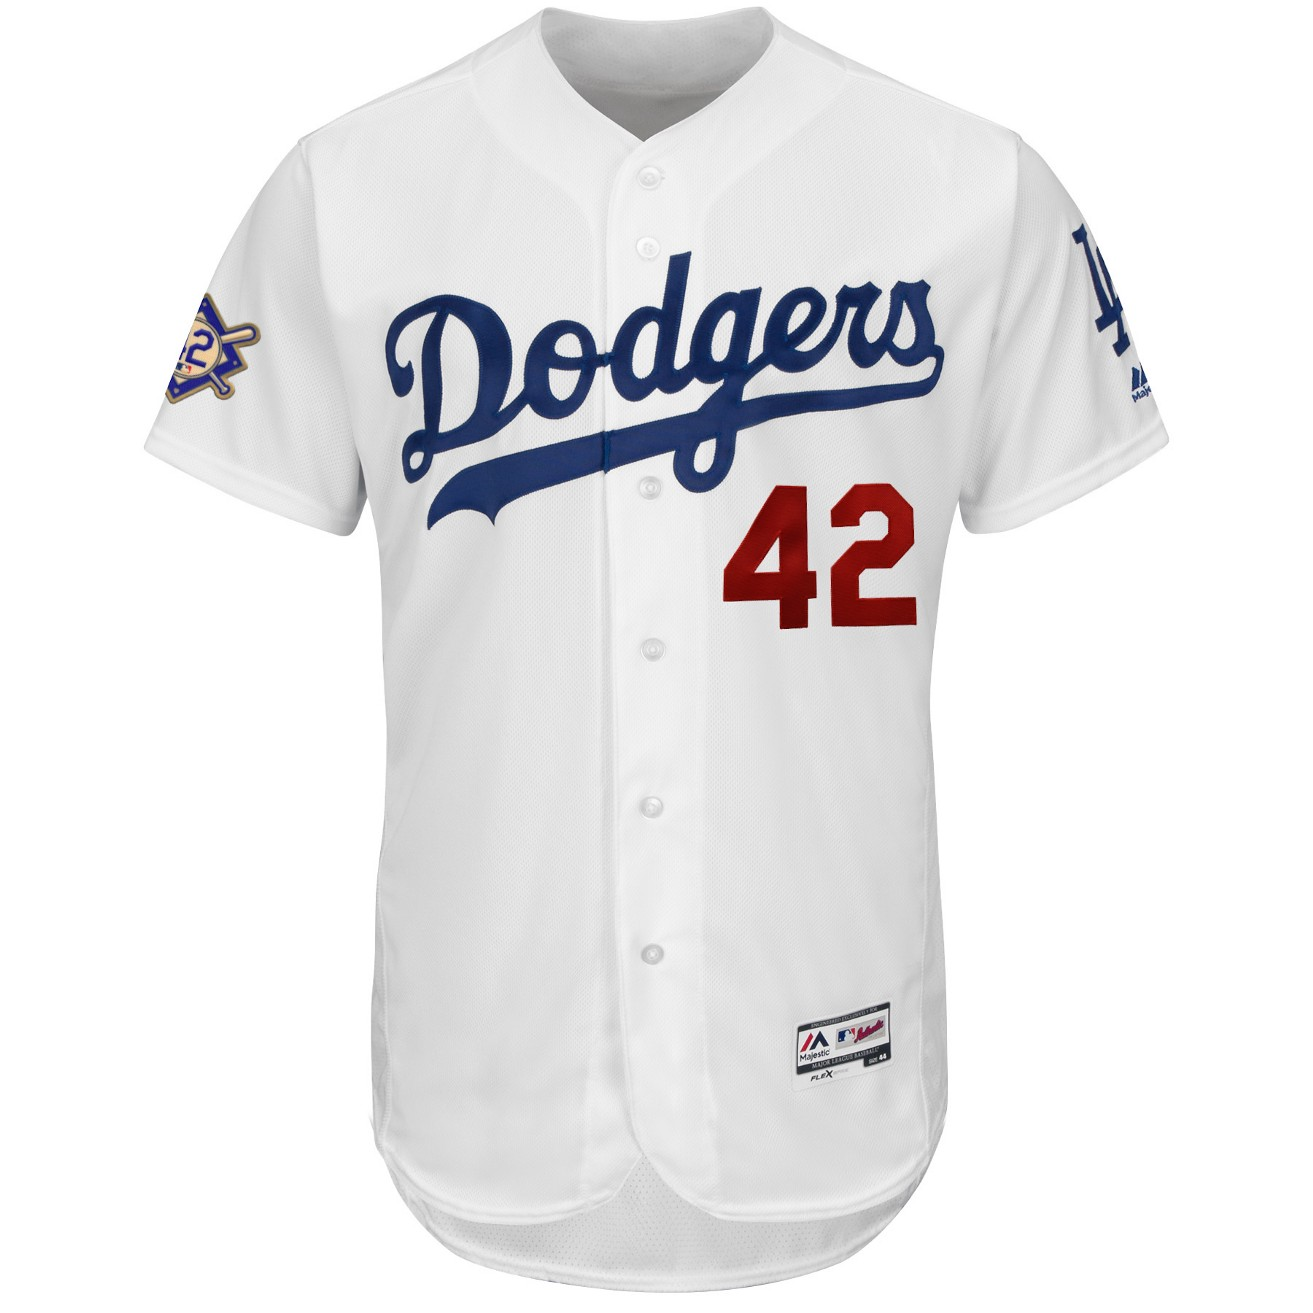 c94fa380 ... patch on all team caps and jersey sleeves, socks emblazoned with '42,'  and a brand new lightweight hooded fleece for batting practice and dugout  wear, ...